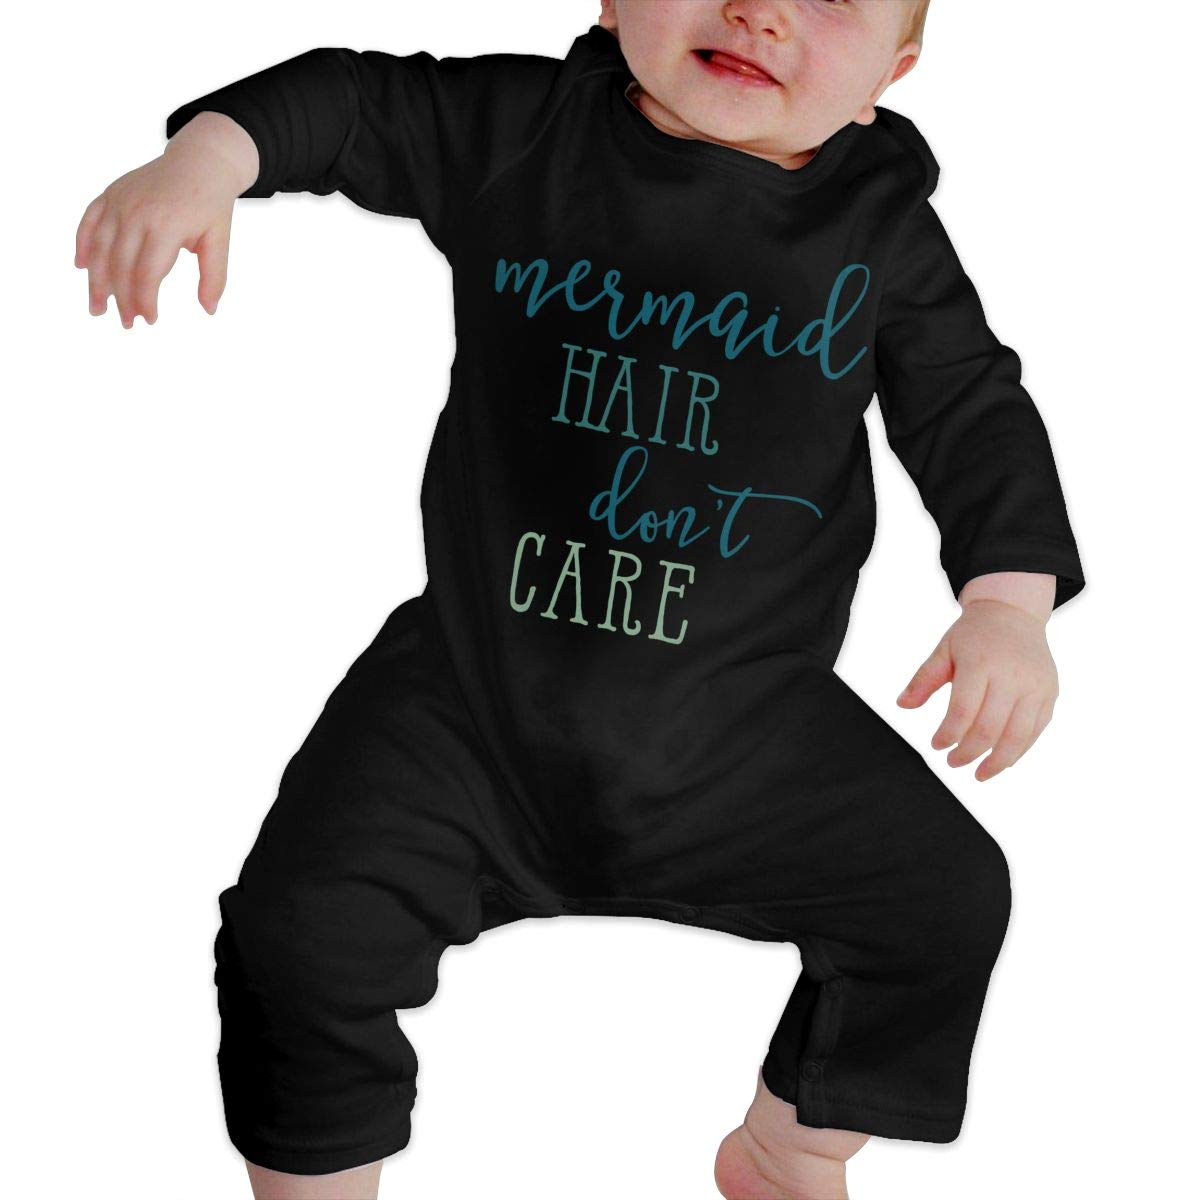 Mermaid Hair Dont Care Newborn Baby Boy Girl Romper Jumpsuit Long Sleeve Bodysuit Overalls Outfits Clothes